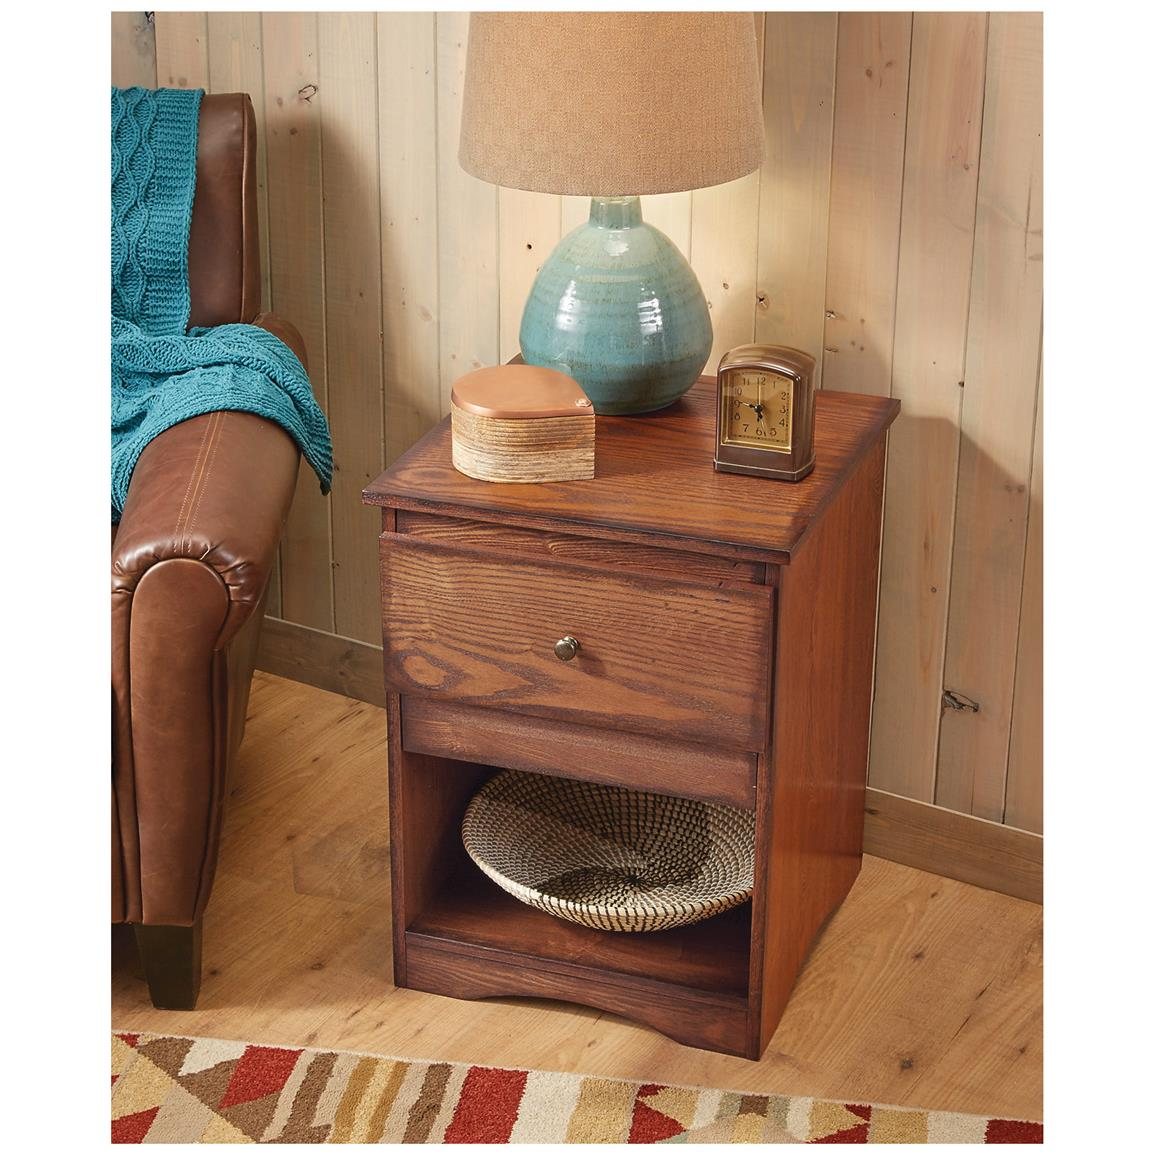 Sturdy, and durable can be used as a normal end table